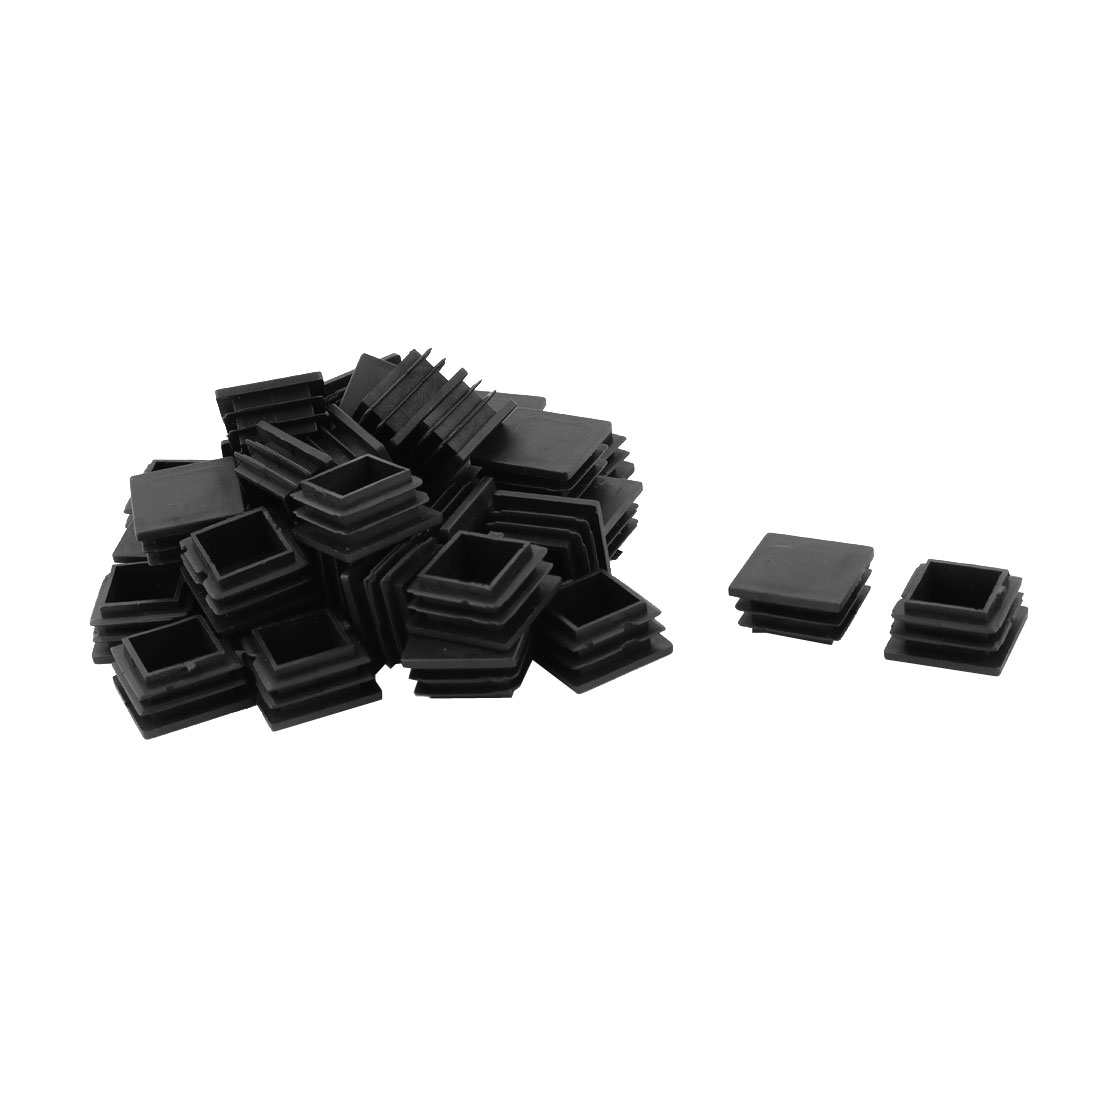 Furniture Square Shaped Table Feet Cover Tube Insert Black 30mm x 30mm 36pcs